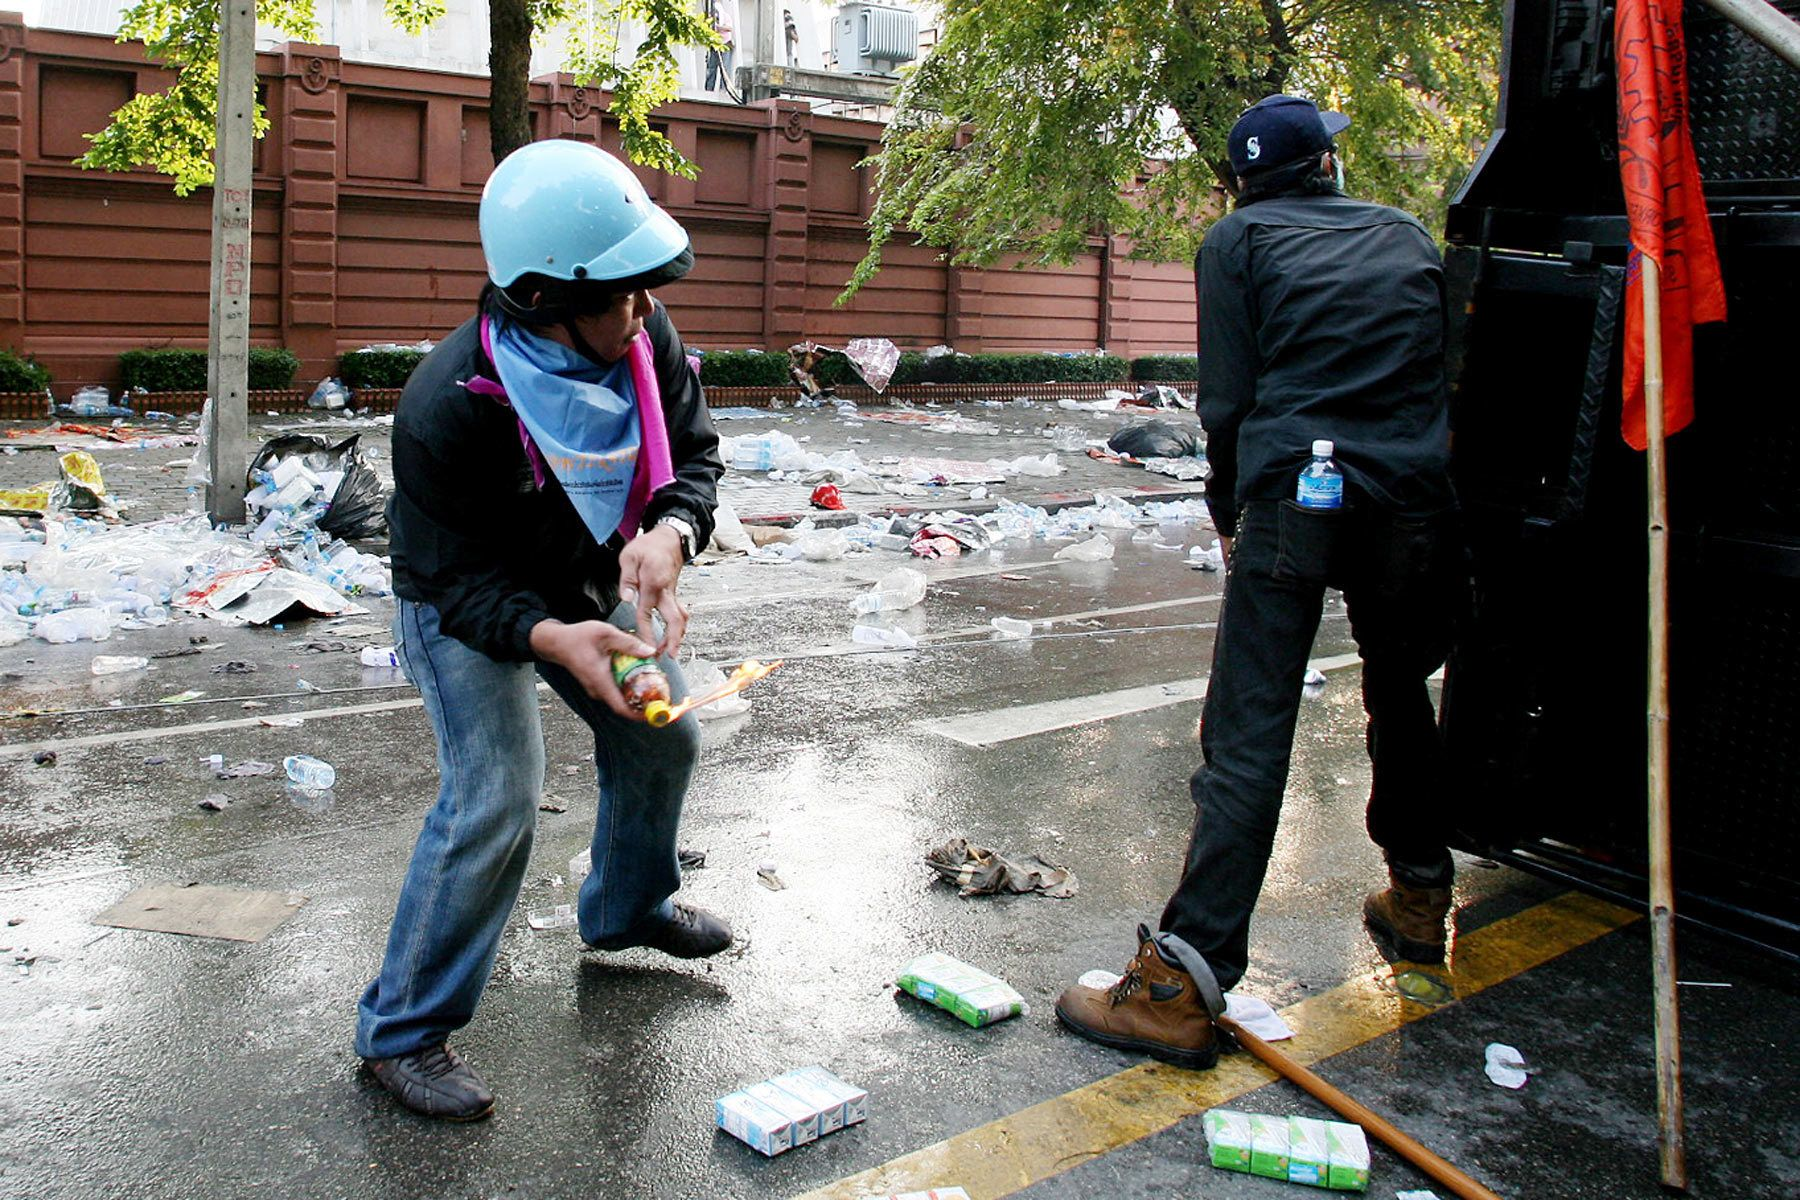 A demonstrator throws a petrol bomb at police during clashes between the People's Alliance for Democracy (PAD) and police.